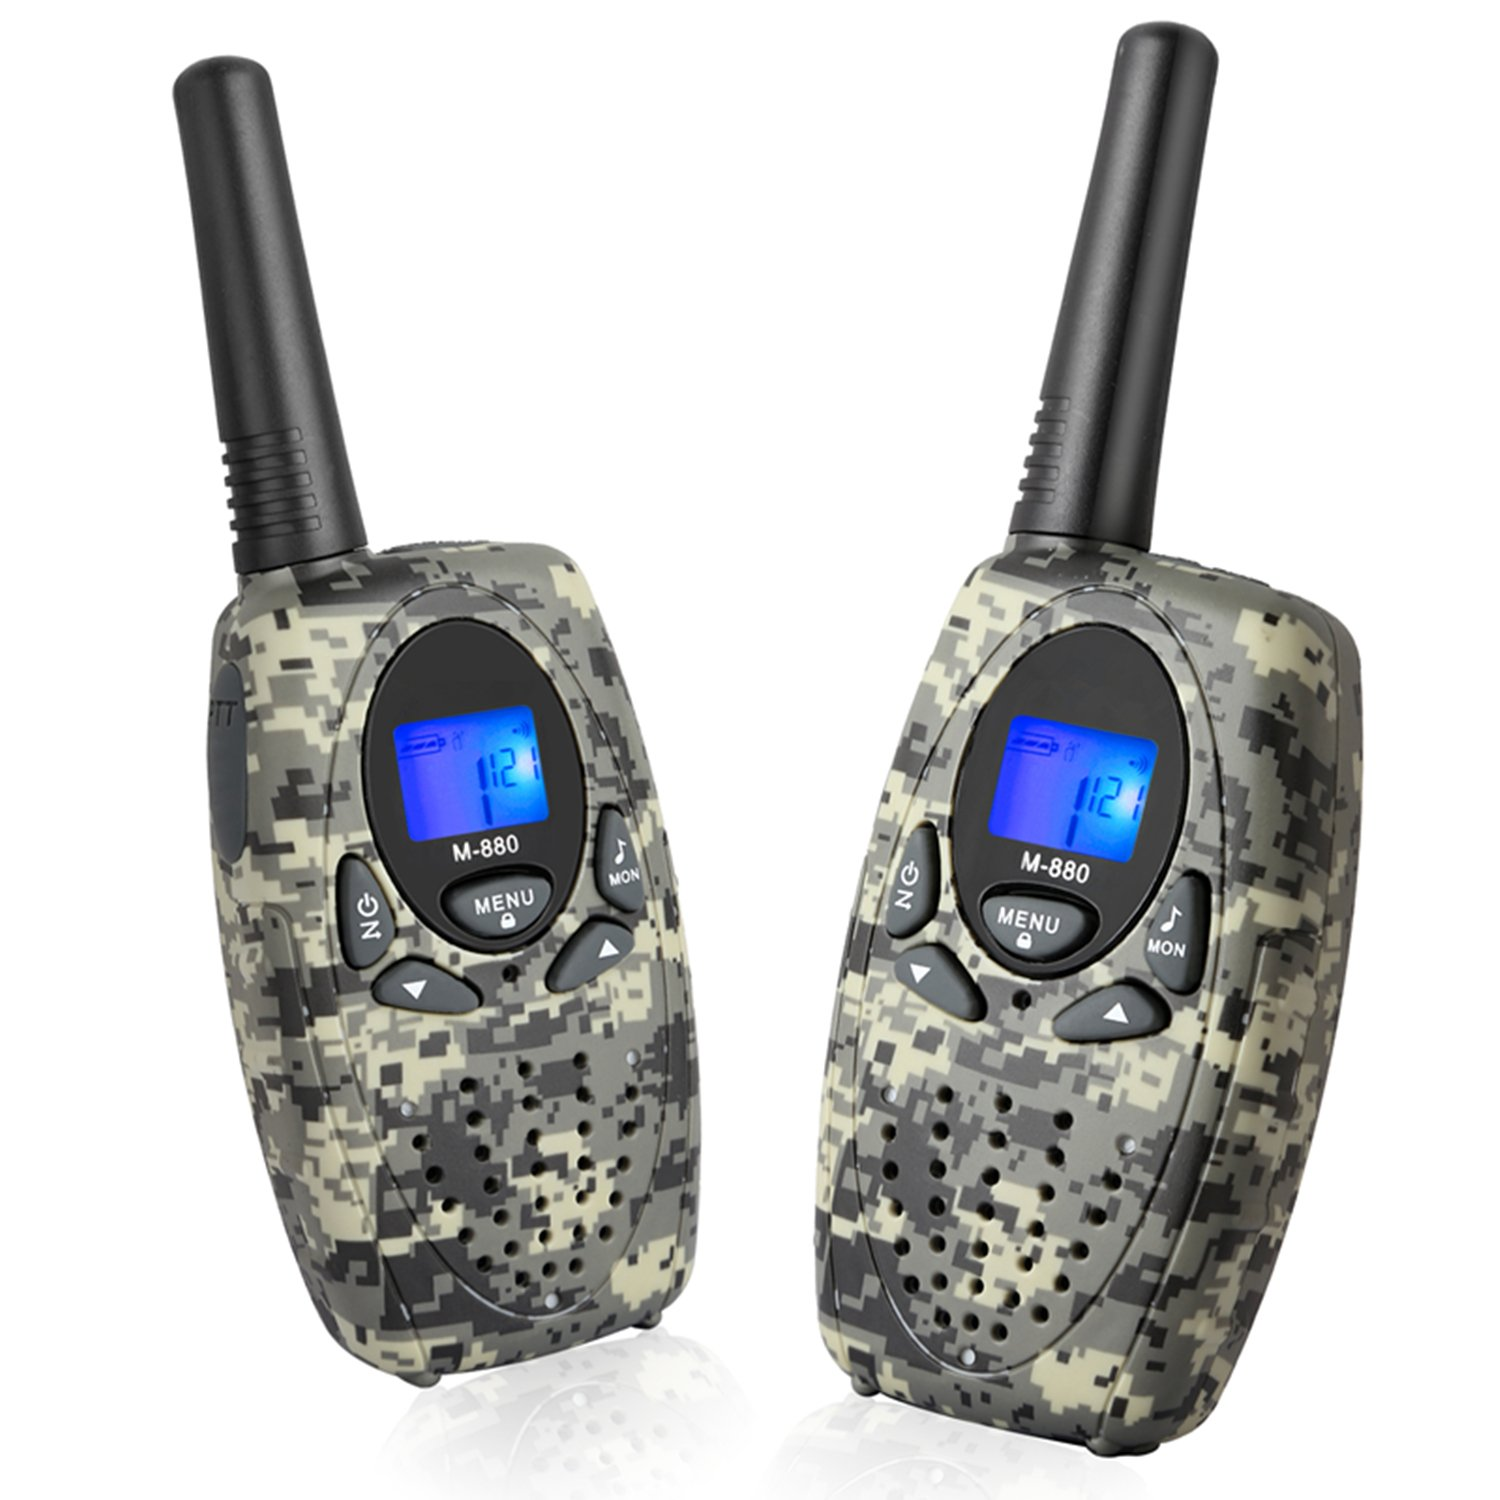 Two Way Radios Long Range, Topsung M880 FRS Walkie Talkie for Adults with Mic LCD Screen/Portable Wakie-Talkie with 22 Channel 3Mile for Children Camping Hiking Hunting Fishing (Camo 2 in 1)